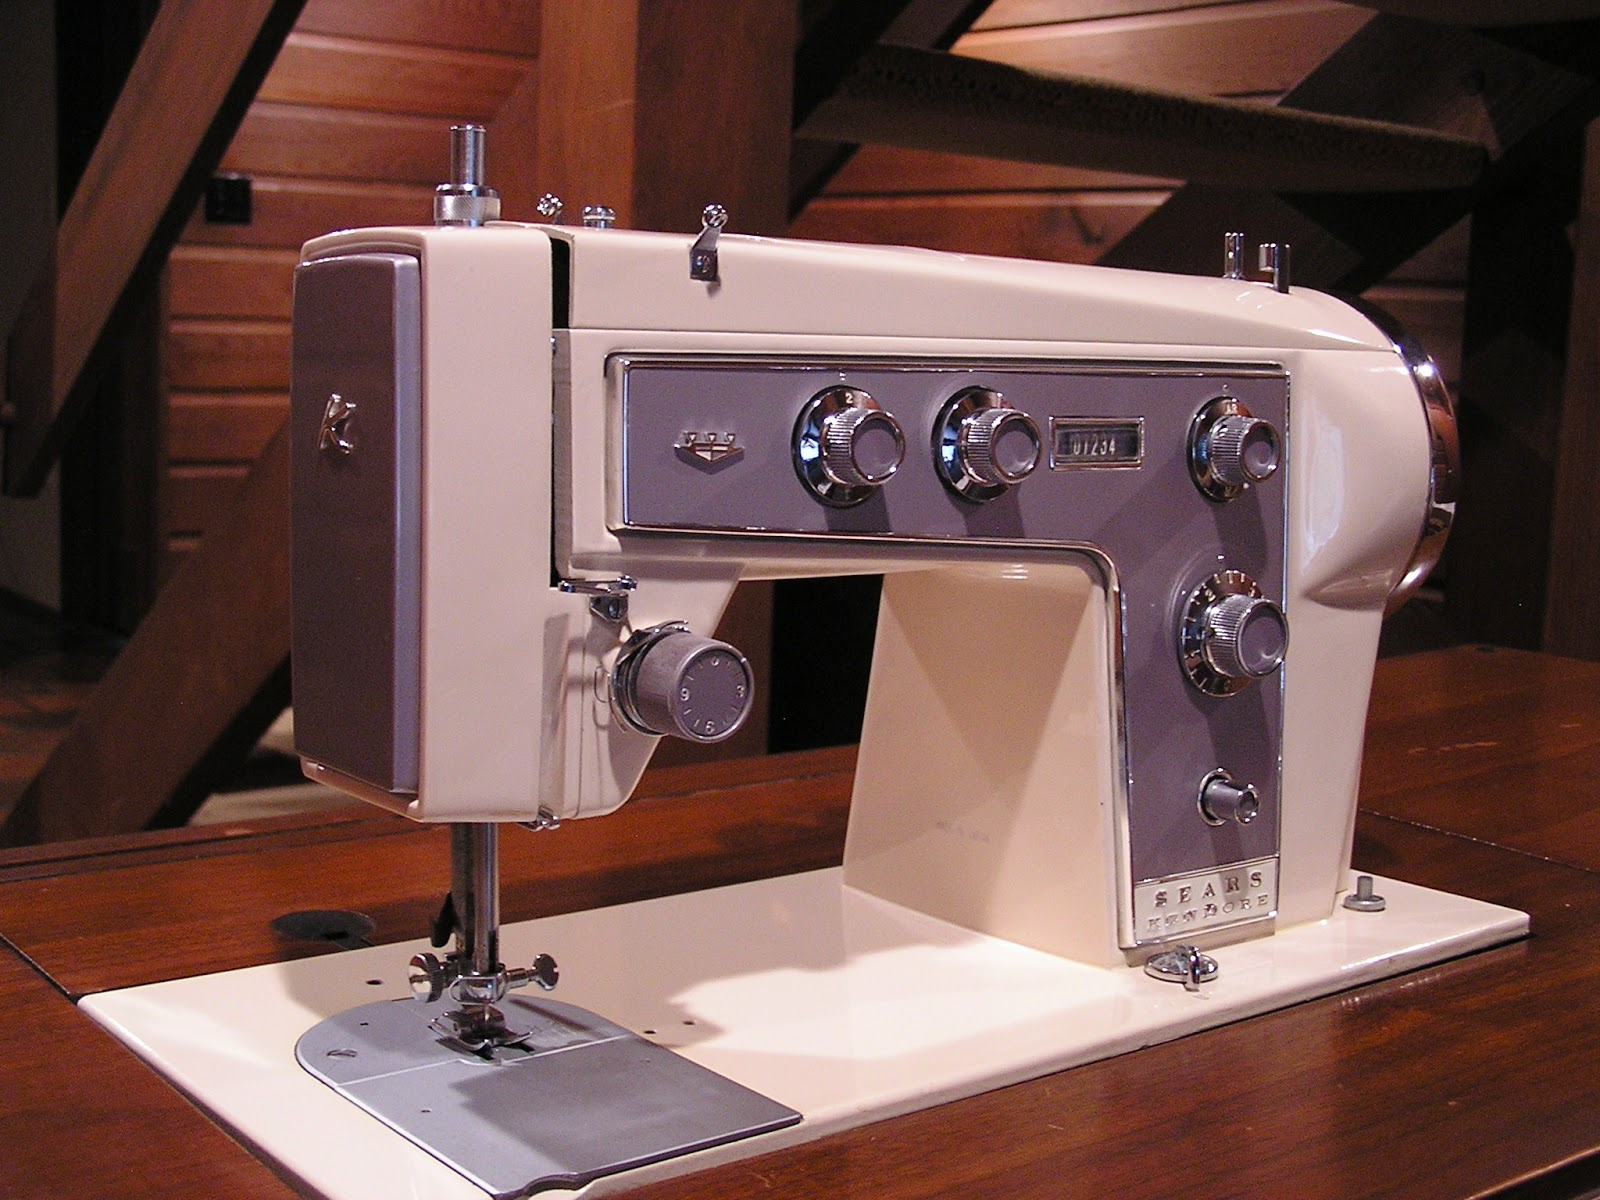 kenmore sewing machine. the model 90 is one of most elegant machines i own. kenmore sewing machine